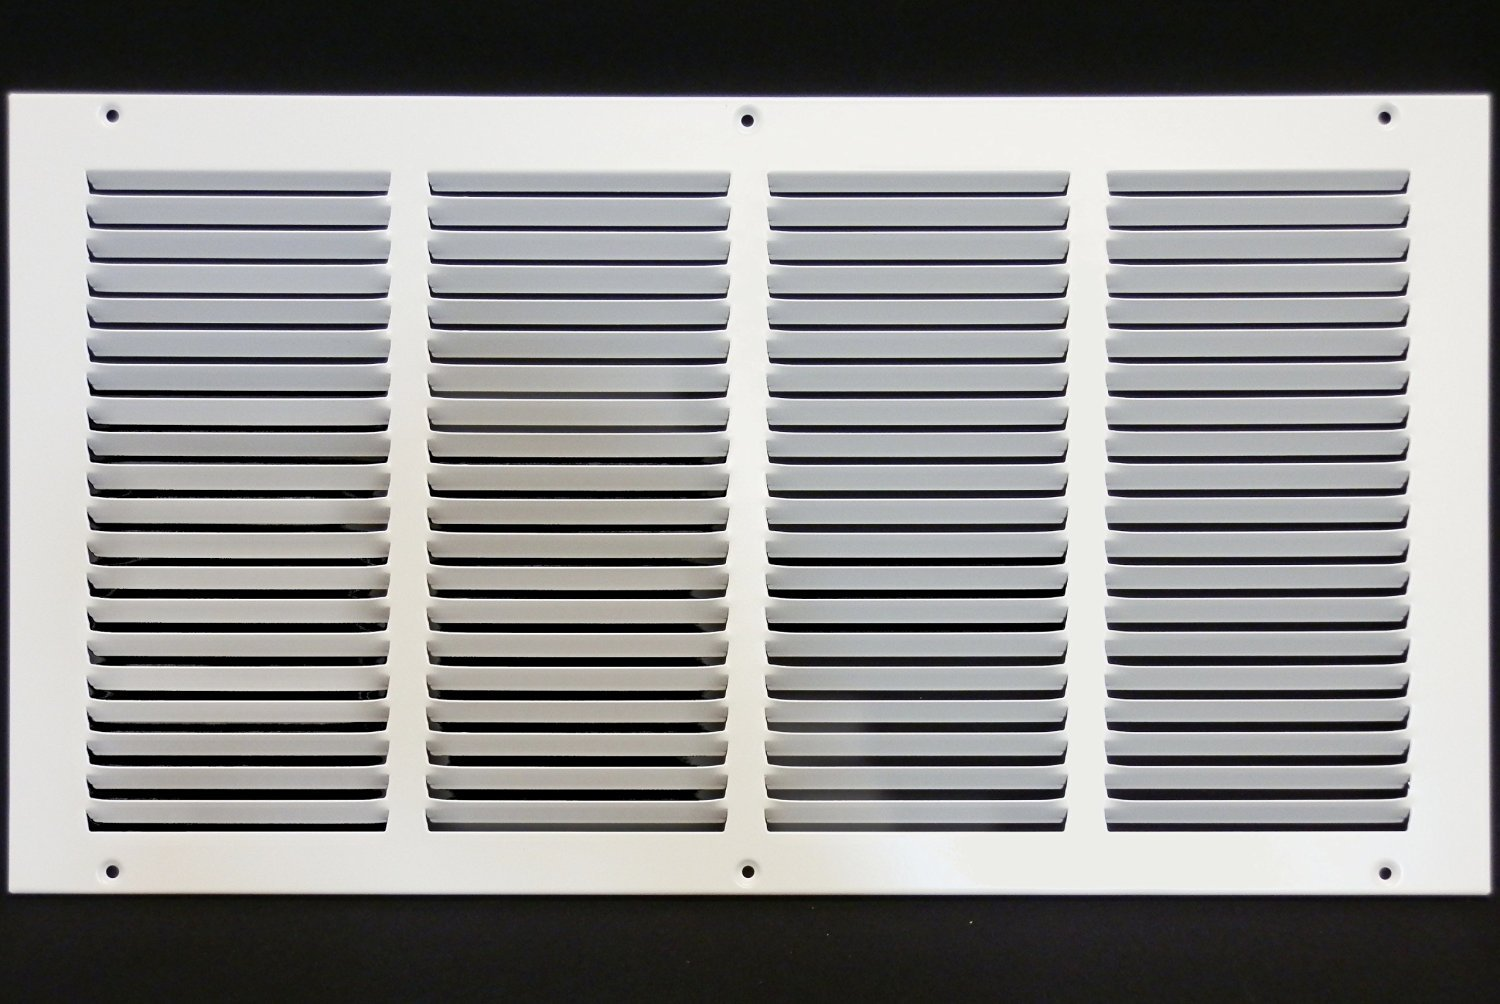 20''w X 8''h Steel Return Air Grilles - Sidewall and Cieling - HVAC DUCT COVER - White [Outer Dimensions: 21.75''w X 9.75''h]